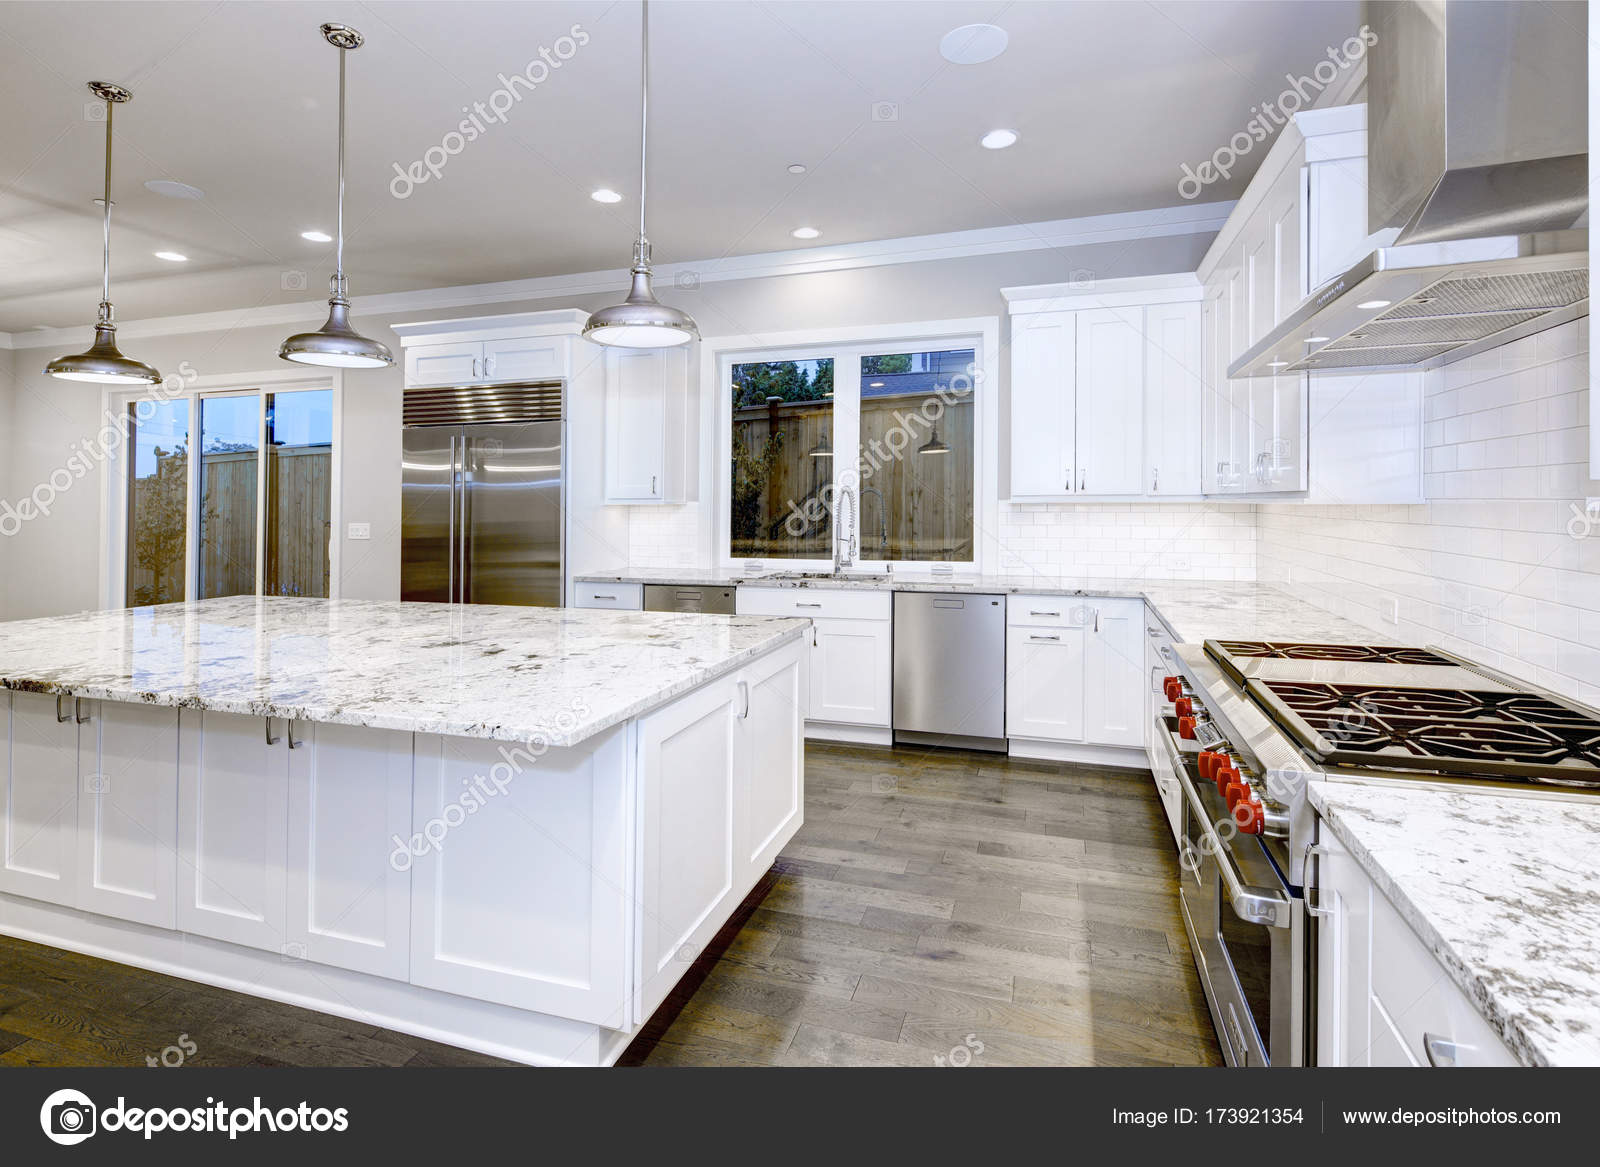 cheap unfinished kitchen cabinets solid wood toy 大 宽敞厨房设计与白色厨柜 图库照片 c iriana88w 173921354 large spacious design with white island lots of storage granite countertops subway tiles and stainless